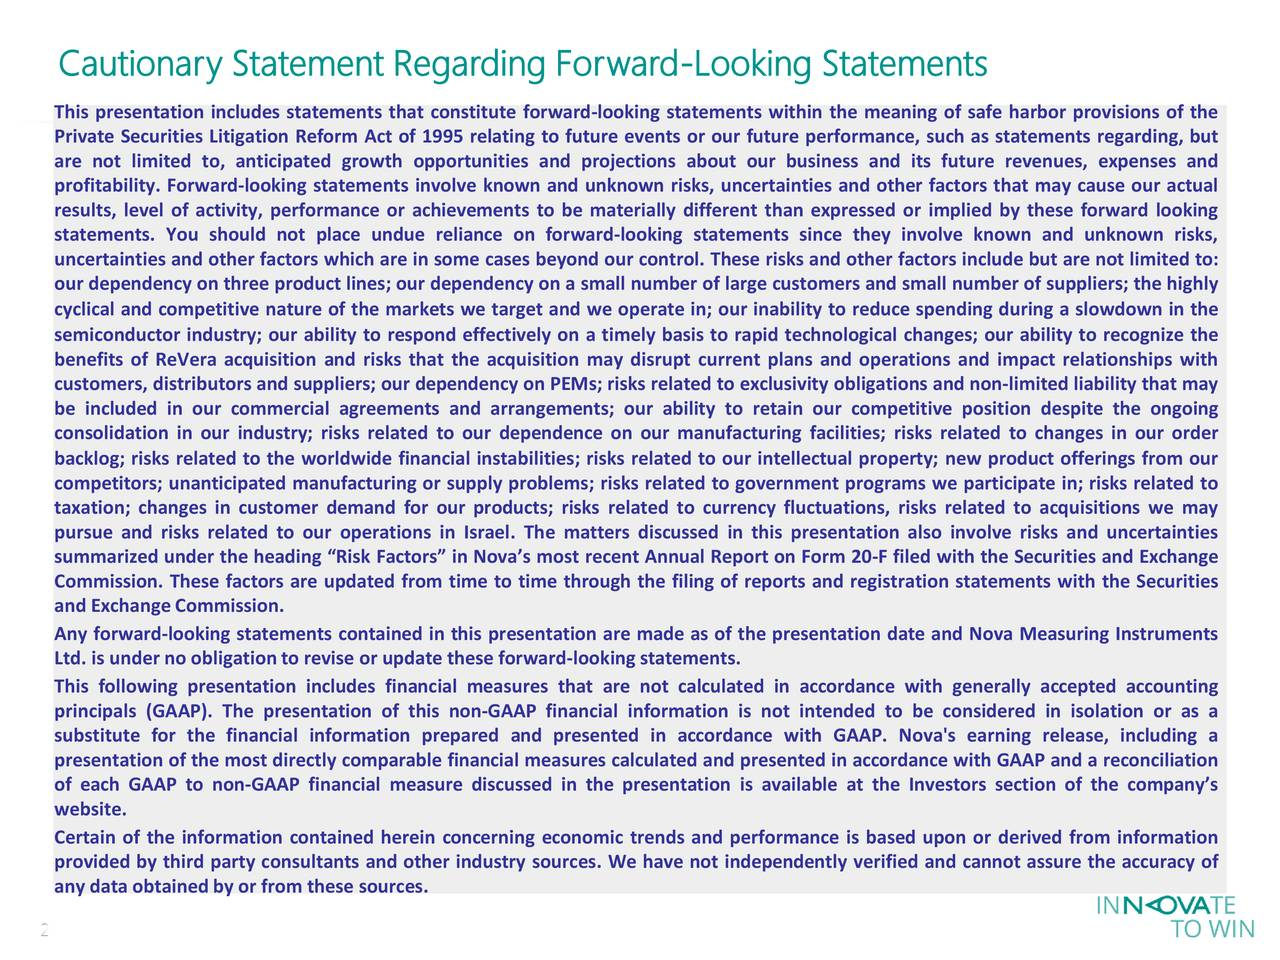 This presentation includes statements that constitute forward-looking statements within the meaning of safe harbor provisions of the Private Securities Litigation Reform Act of 1995 relating to future events or our future performance, such as statements regarding, but are not limited to, anticipated growth opportunities and projections about our business and its future revenues, expenses and profitability. Forward-looking statements involve known and unknown risks, uncertainties and other factors that may cause our actual results, level of activity, performance or achievements to be materially different than expressed or implied by these forward looking statements. You should not place undue reliance on forward-looking statements since they involve known and unknown risks, uncertainties and other factors which are in some cases beyond our control. These risks and other factors include but are not limited to: our dependency on three product lines; our dependency on a small number of large customers and small number of suppliers; the highly cyclical and competitive nature of the markets we target and we operate in; our inability to reduce spending during a slowdown in the semiconductor industry; our ability to respond effectively on a timely basis to rapid technological changes; our ability to recognize the benefits of ReVera acquisition and risks that the acquisition may disrupt current plans and operations and impact relationships with customers, distributors and suppliers; our dependency on PEMs; risks related to exclusivity obligations and non-limited liability that may be included in our commercial agreements and arrangements; our ability to retain our competitive position despite the ongoing consolidation in our industry; risks related to our dependence on our manufacturing facilities; risks related to changes in our order backlog; risks related to the worldwide financial instabilities; risks related to our intellectual property; new product offerings from our c